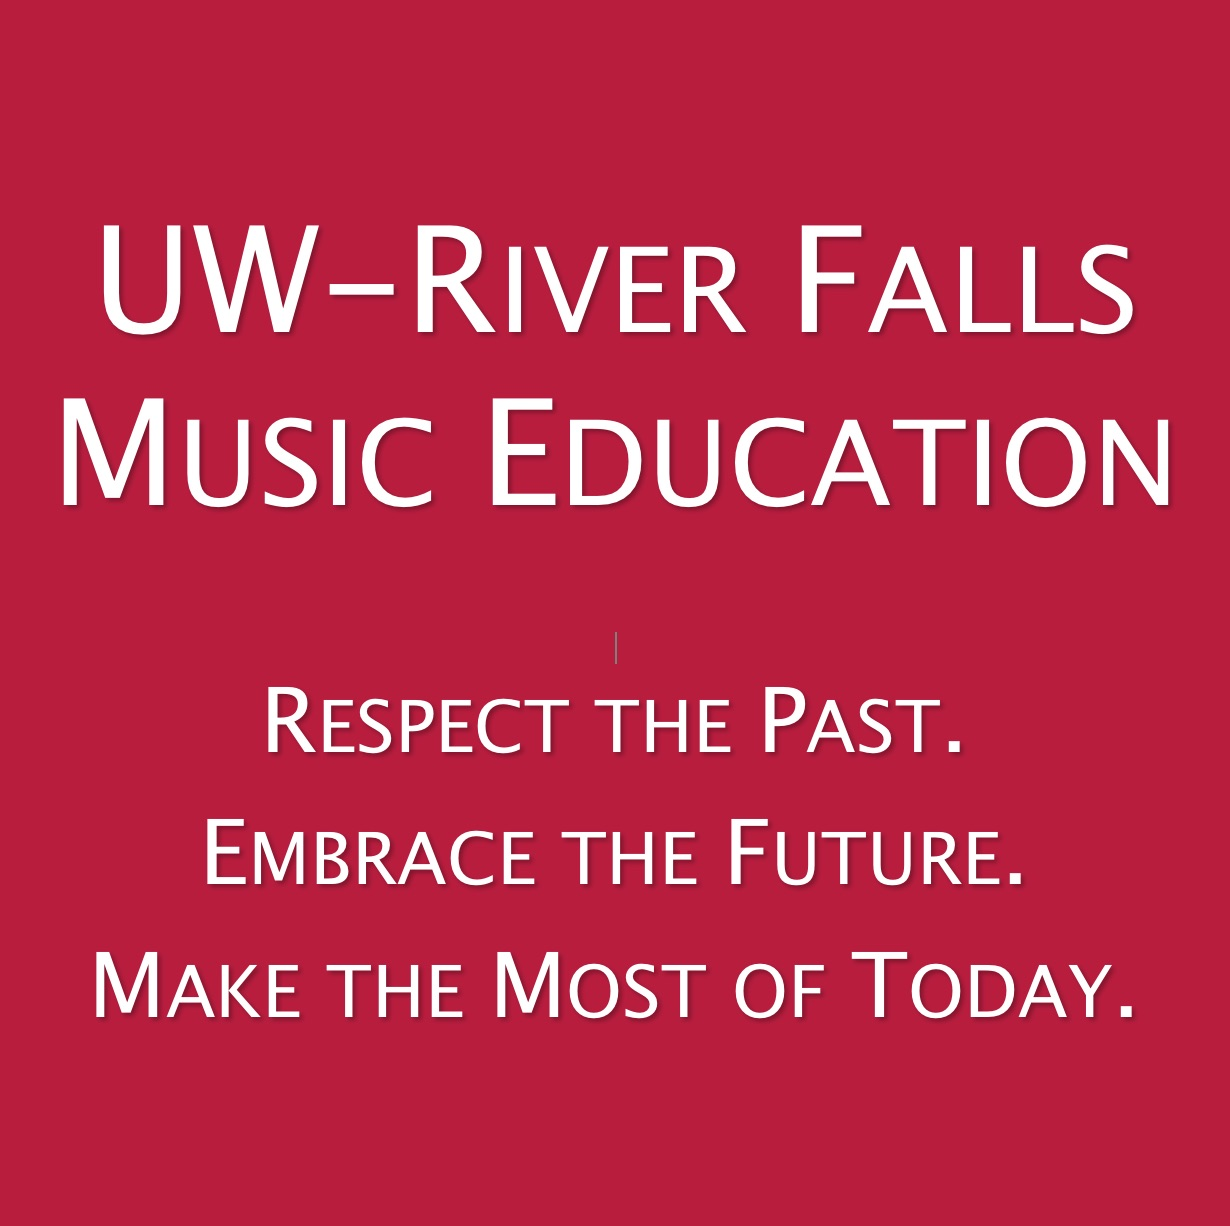 Music Education Motto